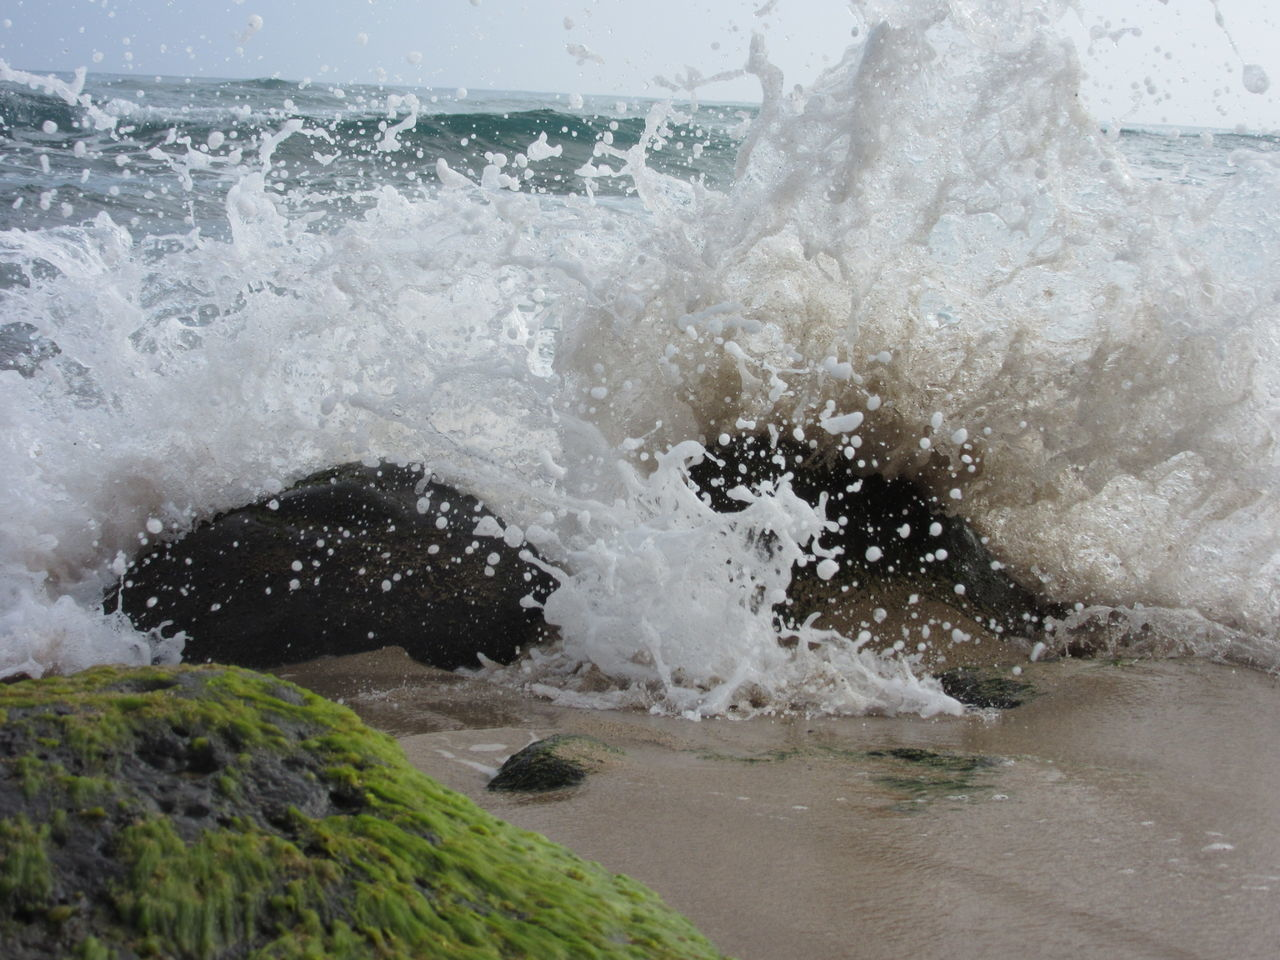 Sand Water Sea Motion Nature Splashing No People Beauty In Nature Wave Outdoors Power In Nature Close-up Low Angle View Low Angle Shot Beach Kauai Hawaii